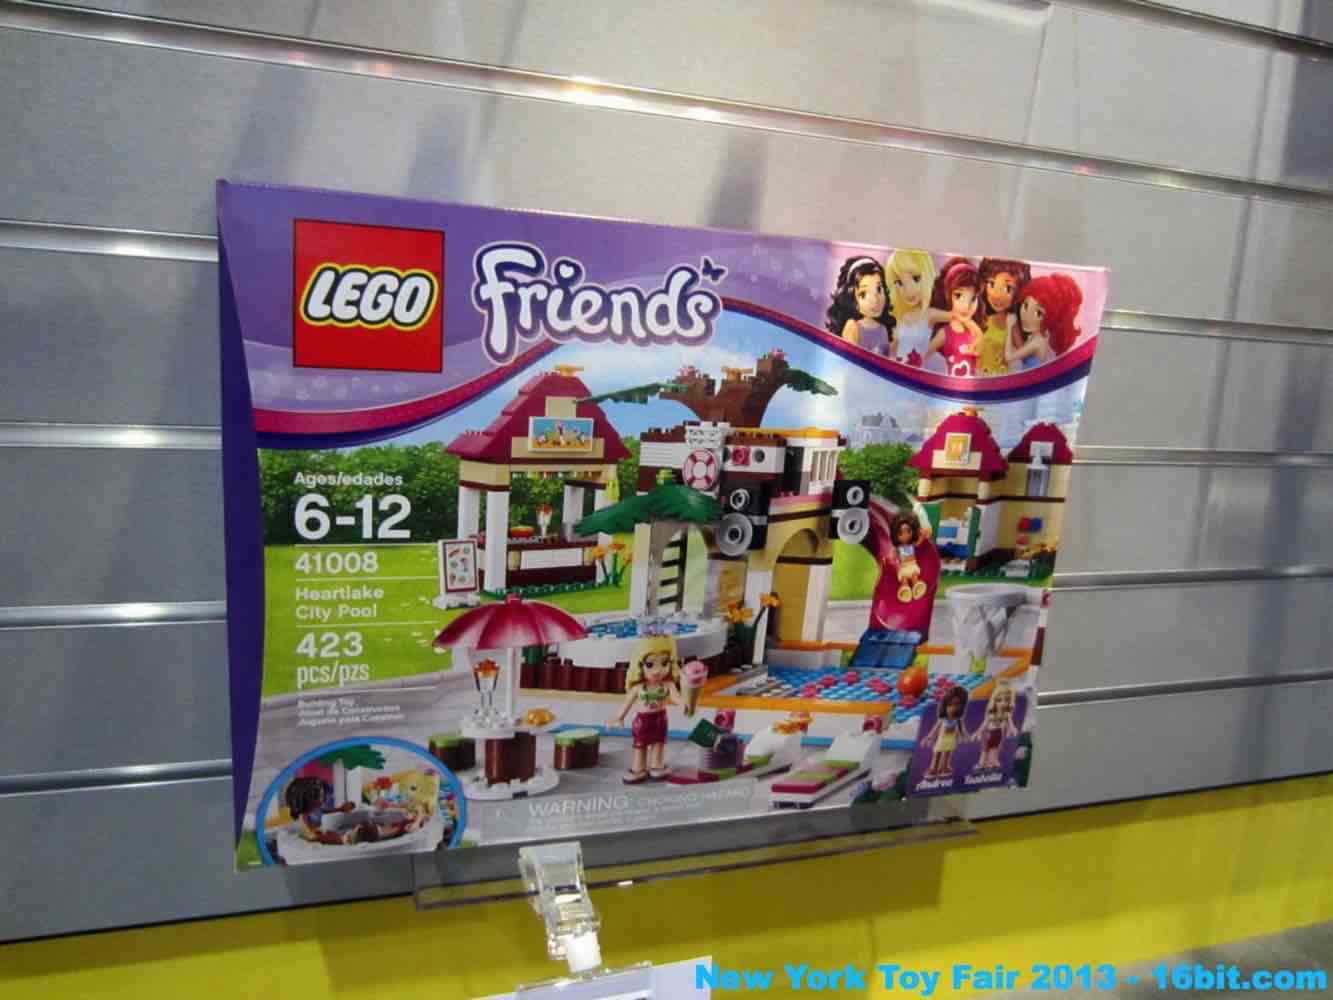 16bit Com Toy Fair Coverage Of Lego Friends From Adam Pawlus